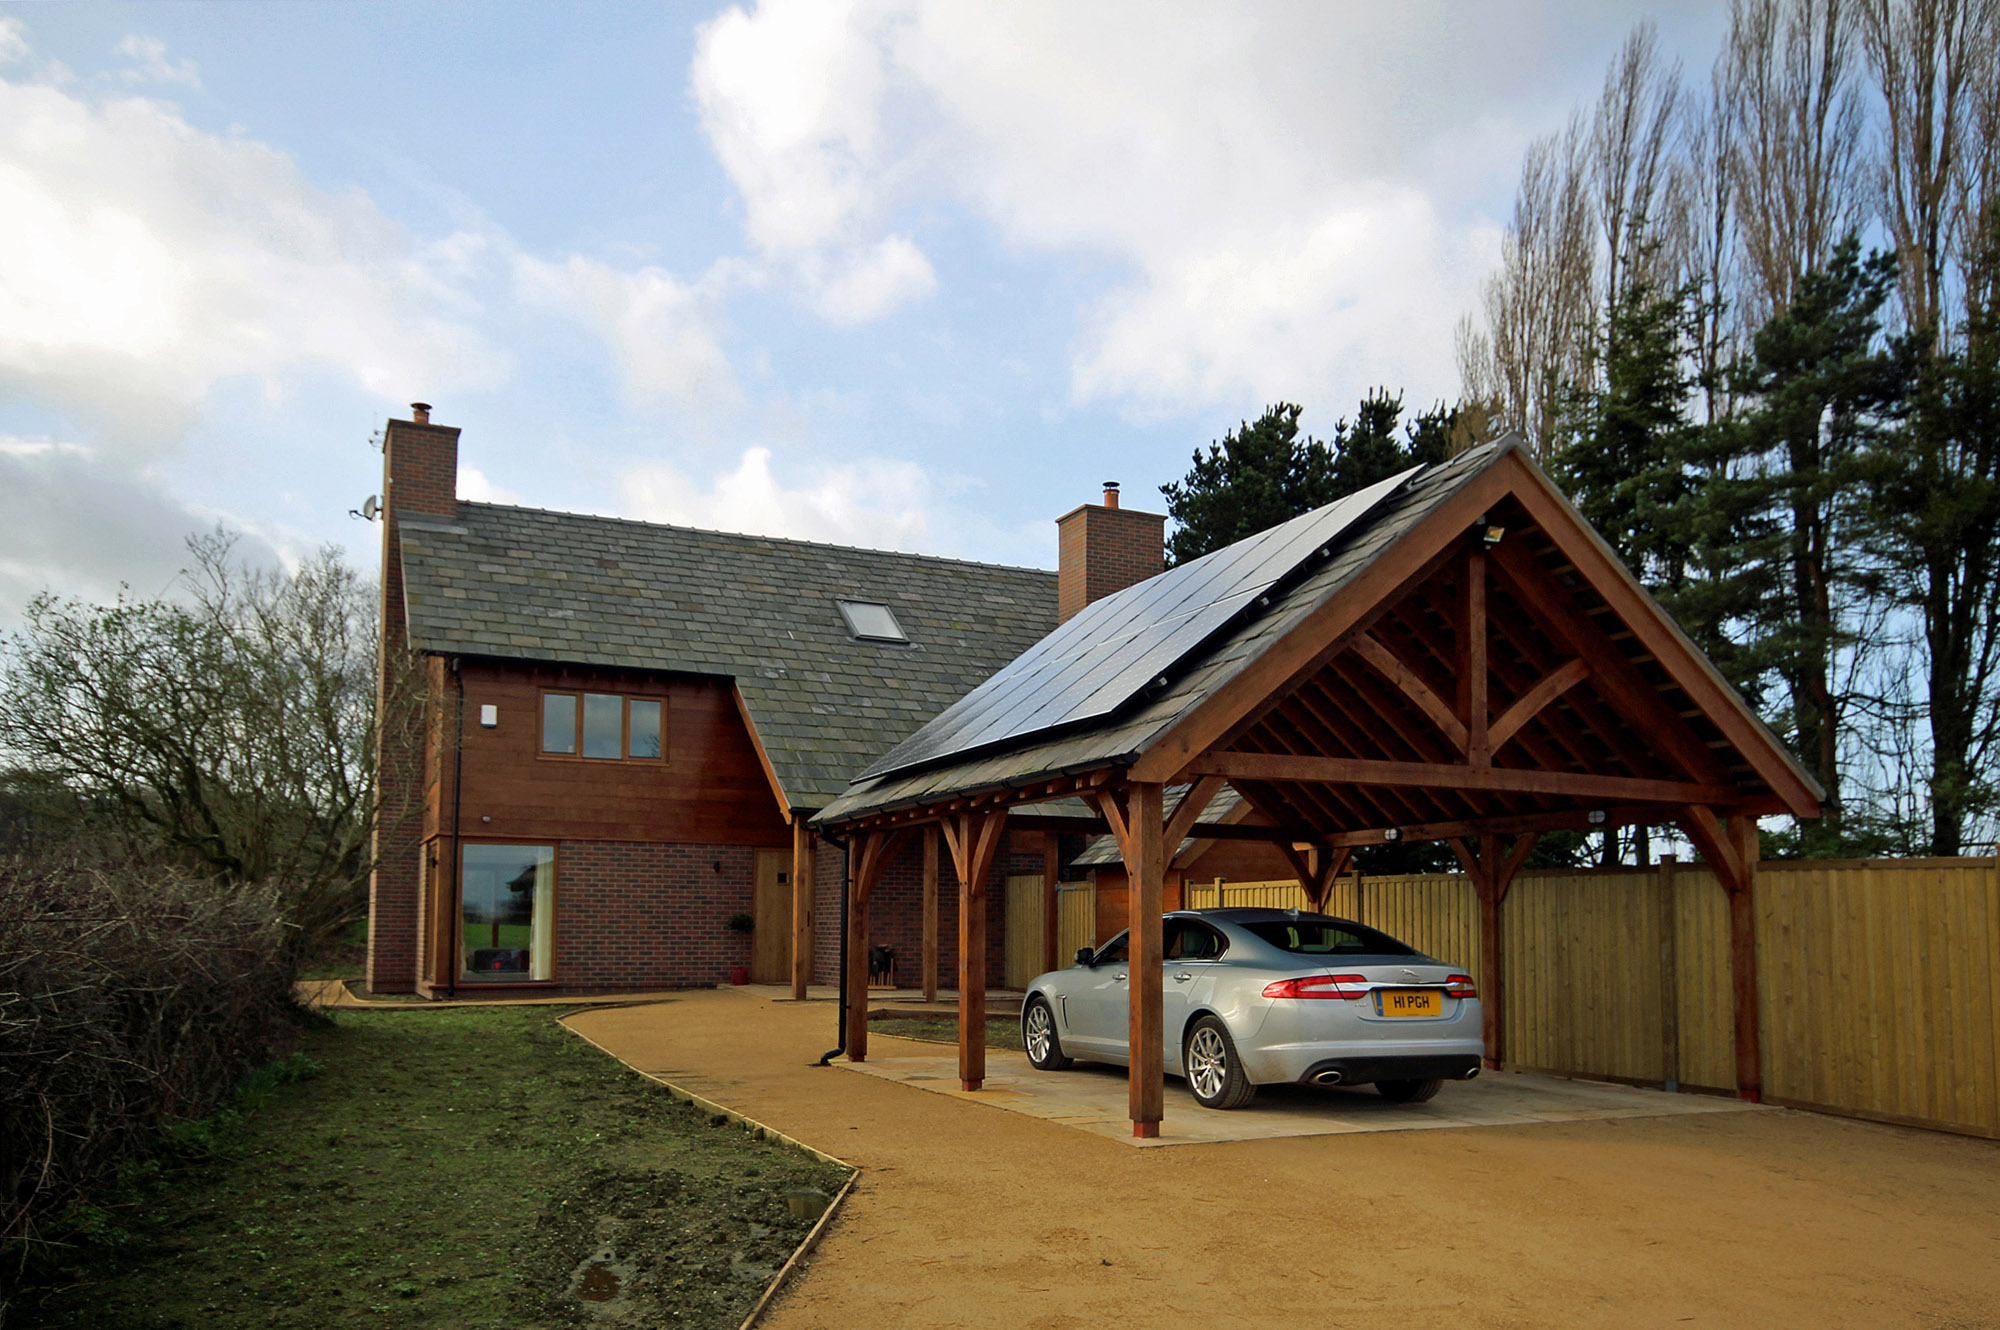 The oak framed carport at the front of Top Mill